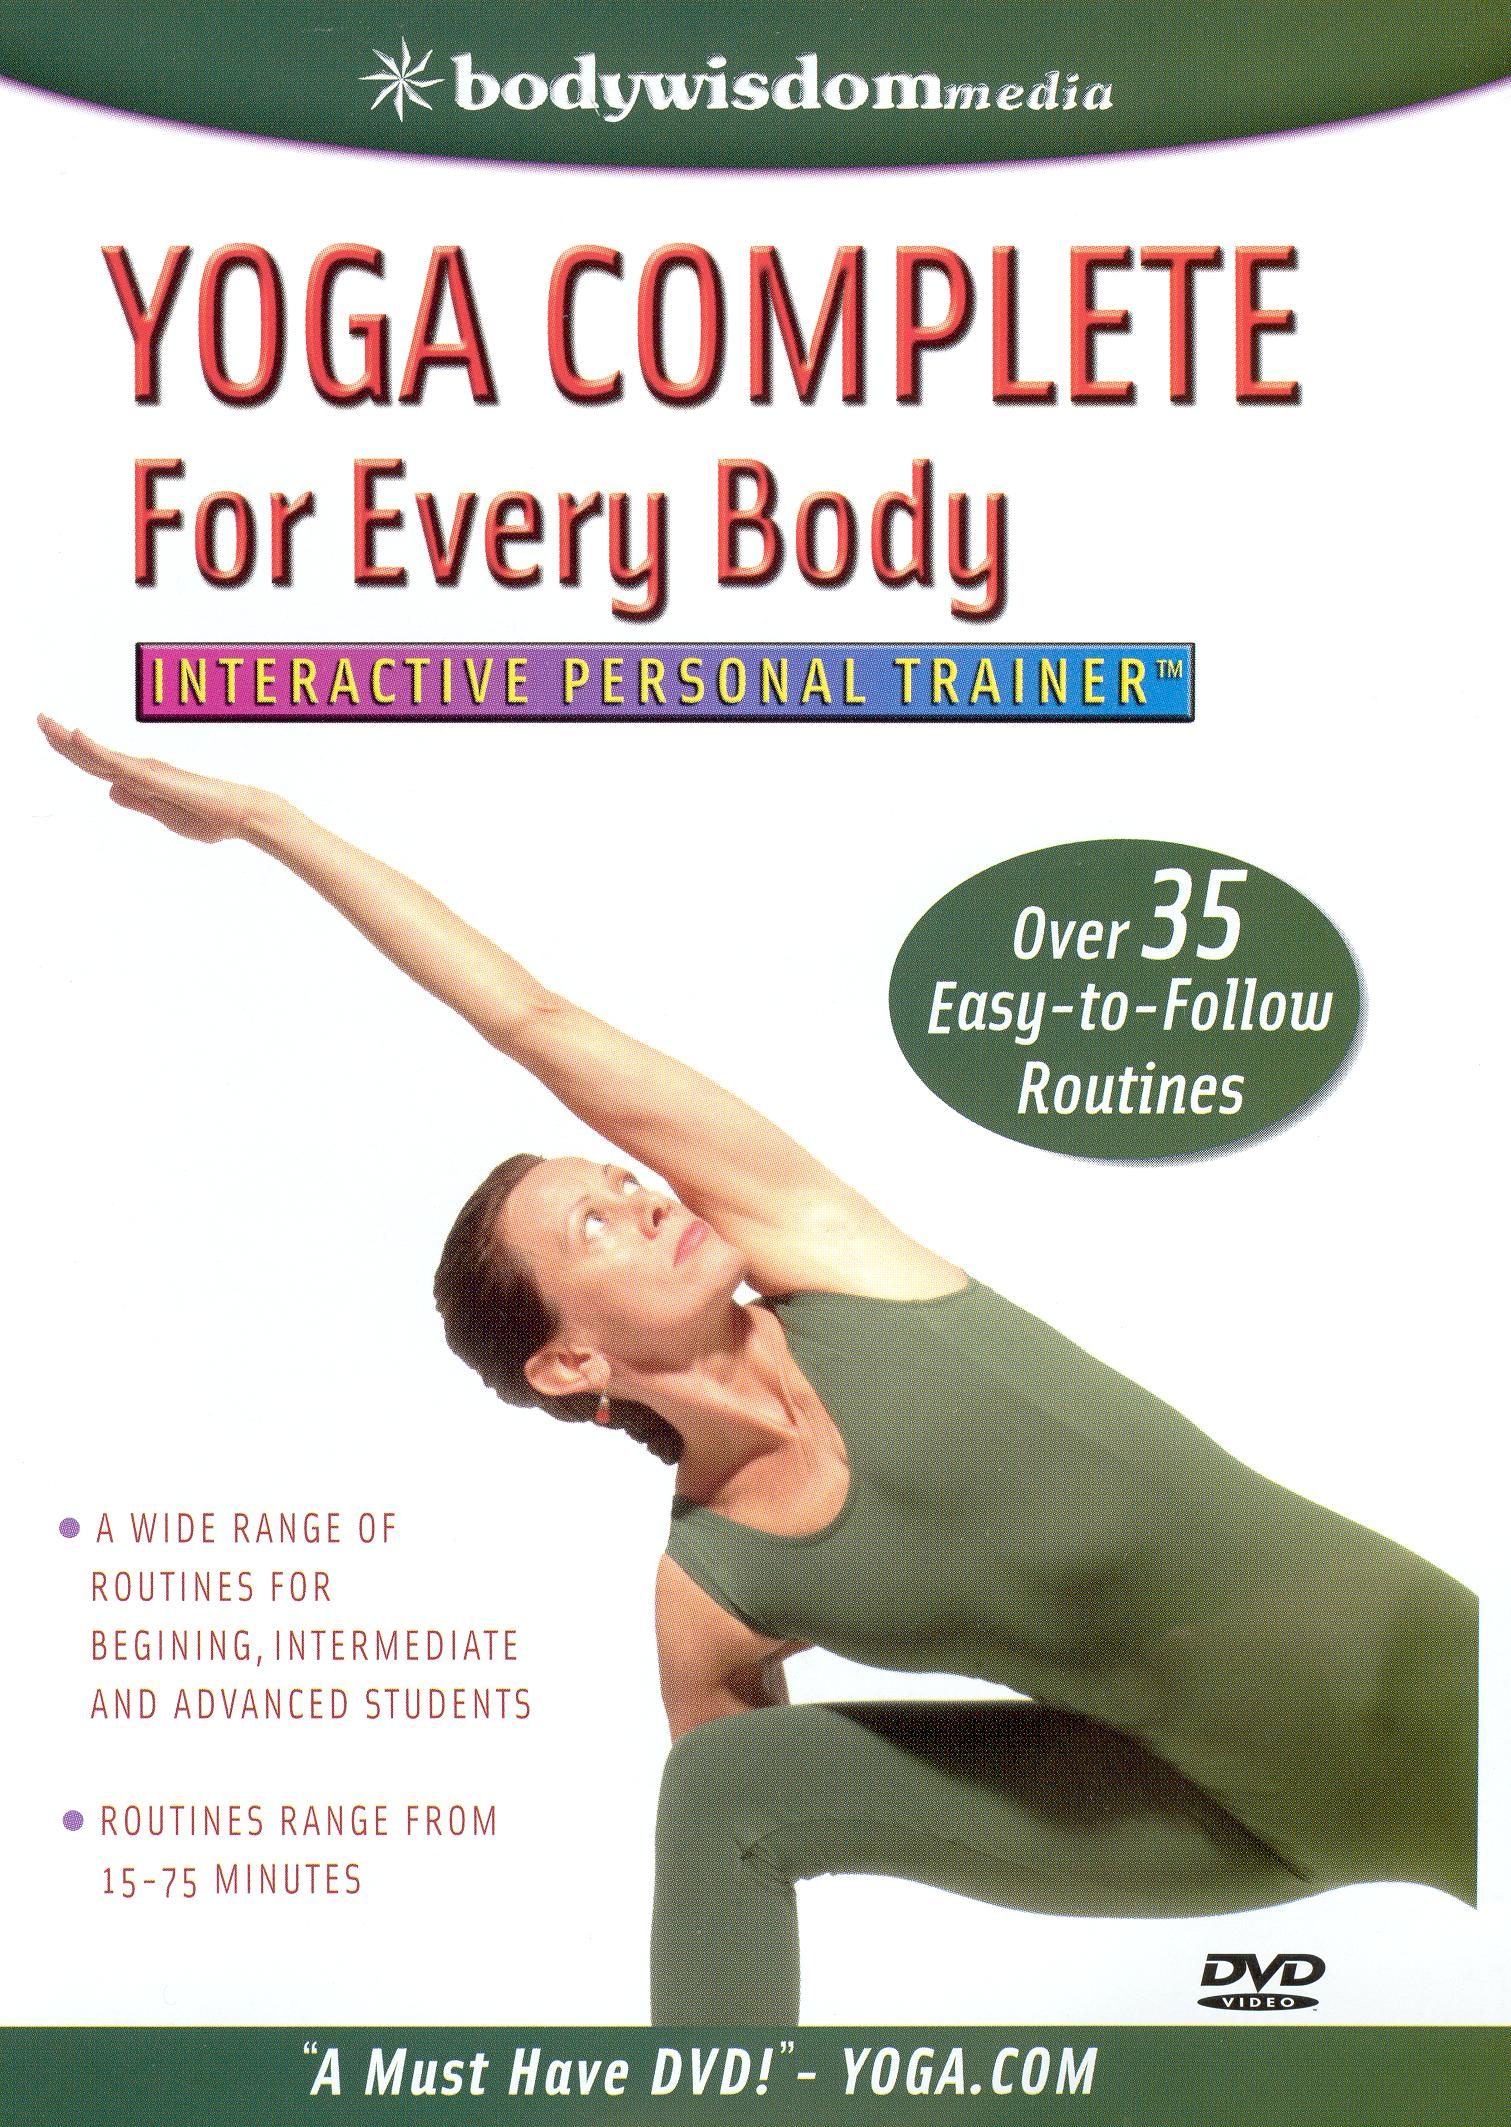 Yoga Complete for Every Body